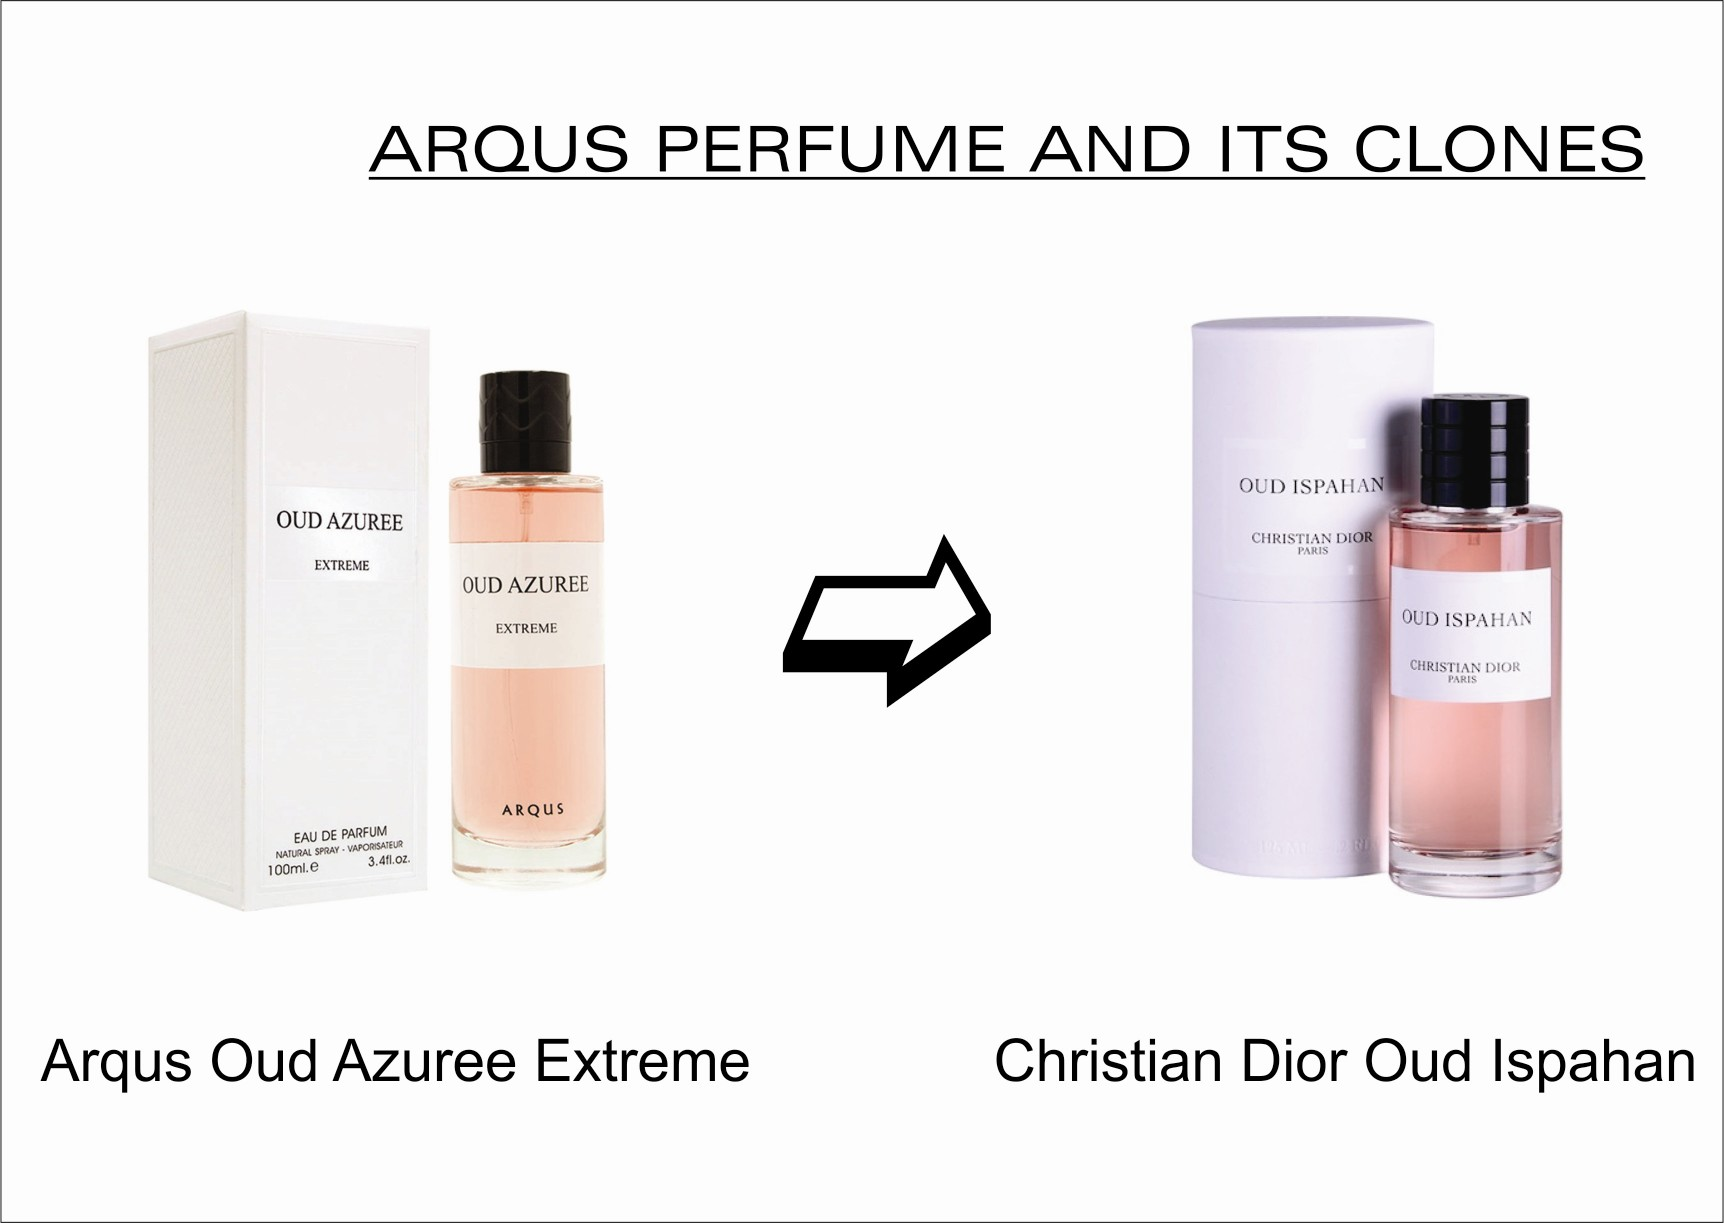 arqus-oud-azuree-extreme-perfume-for-women-100-ml-edp-by-lattafa-perfumes-christian-dior-oud-ispahan